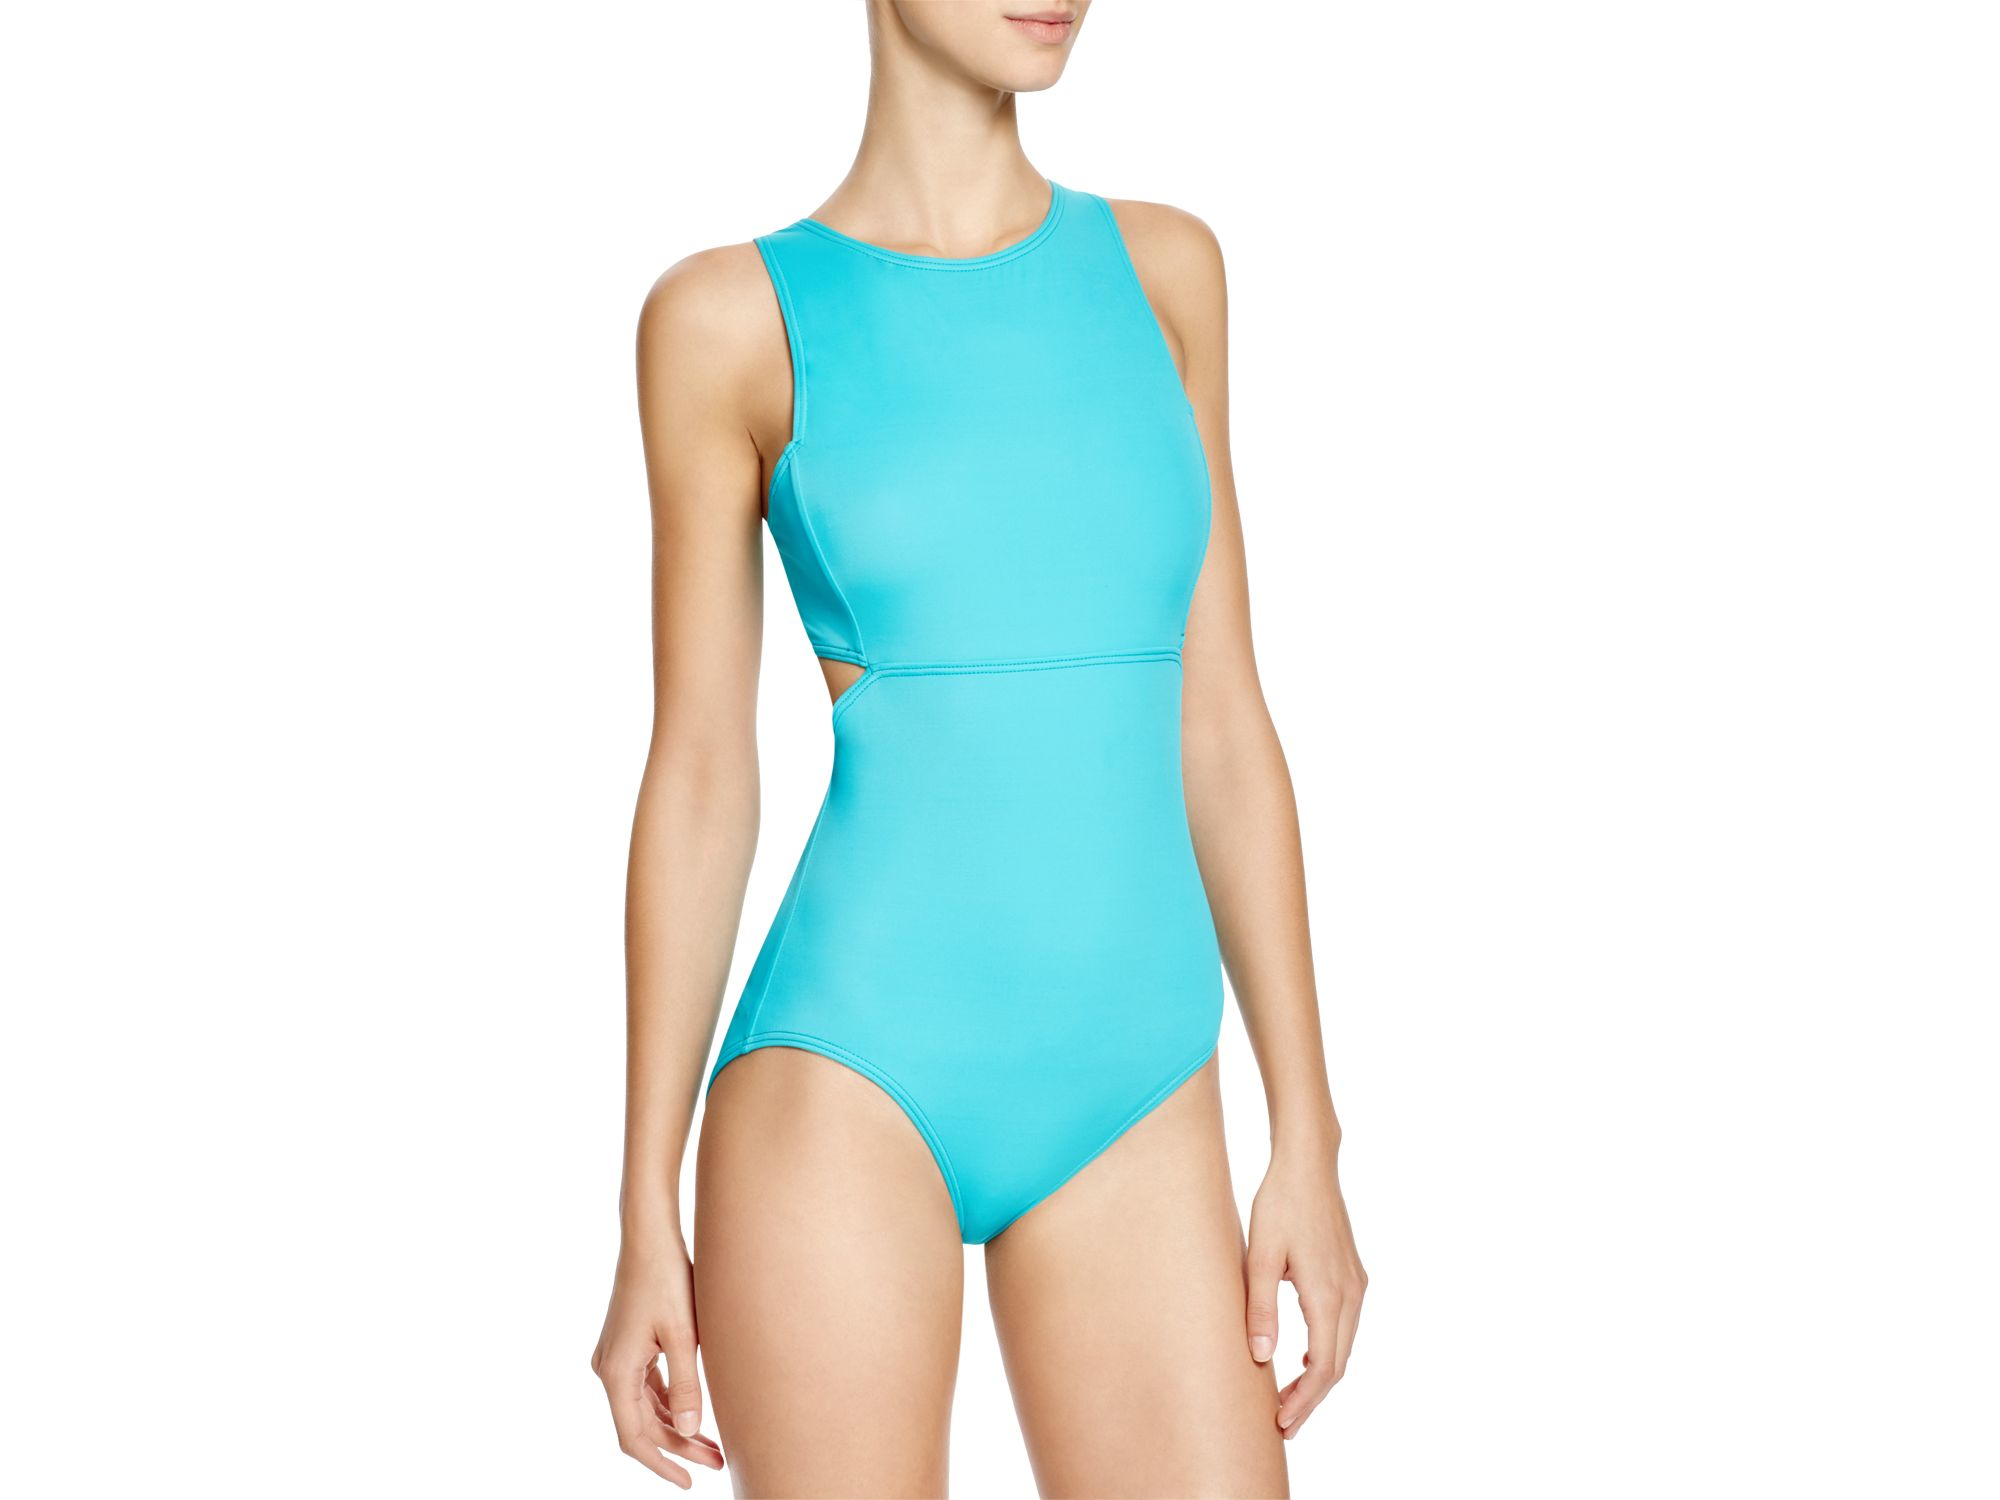 Electric DKNY Women/'s High-Neck Cutout One-Piece Swimsuit